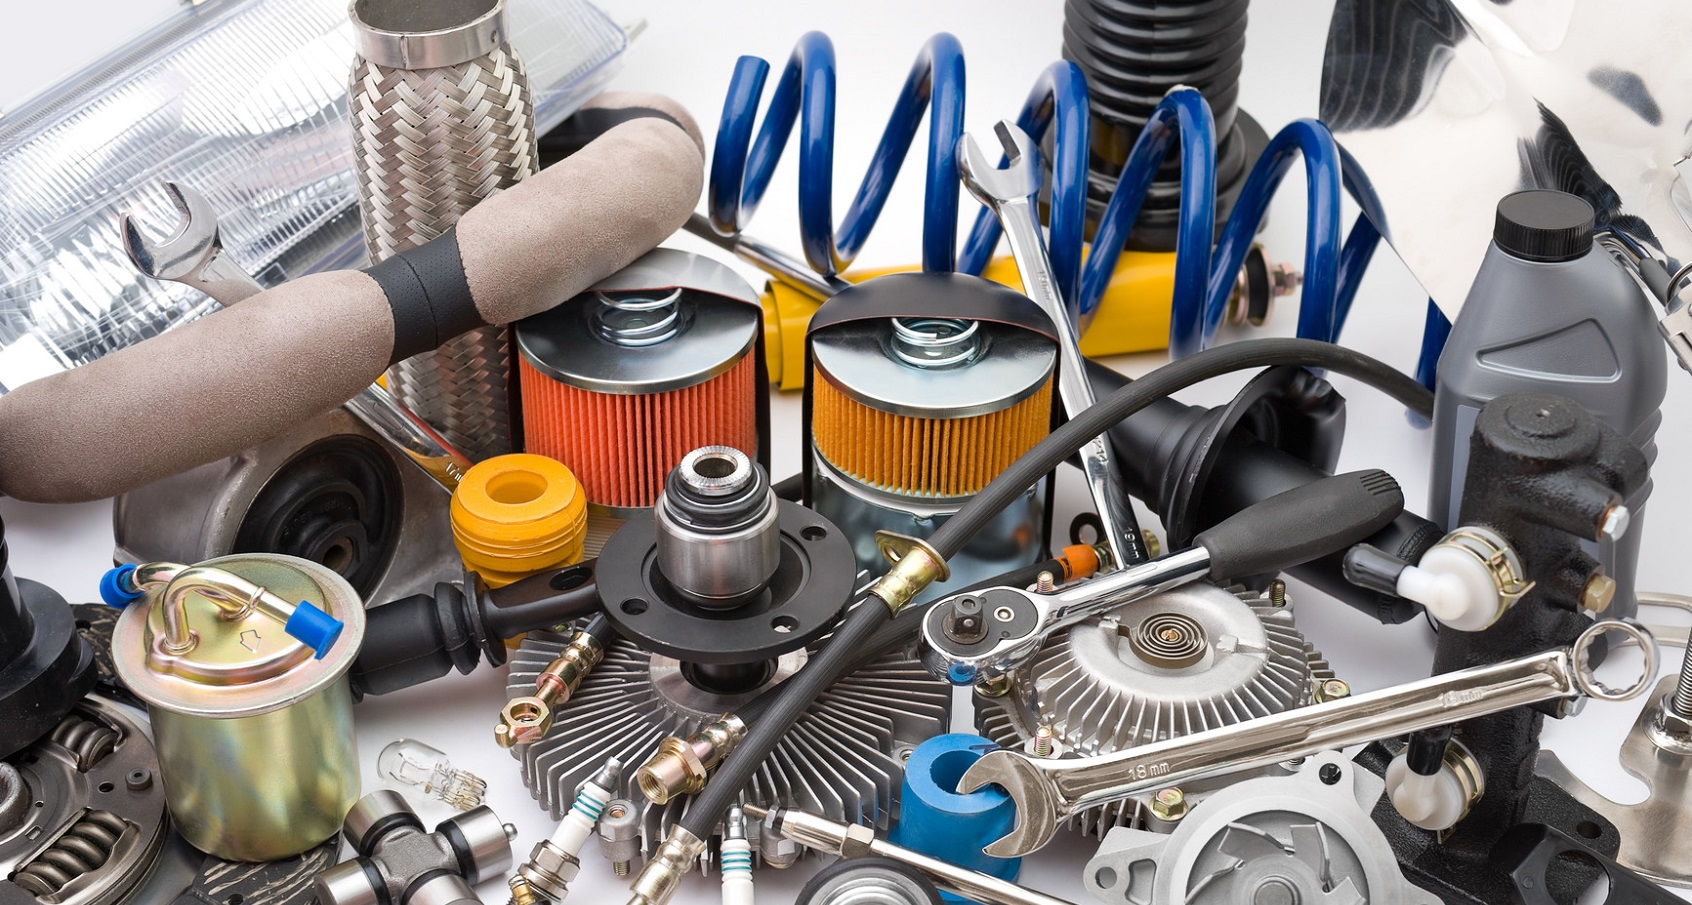 Surplus Auto Parts - Midwest Trading Company